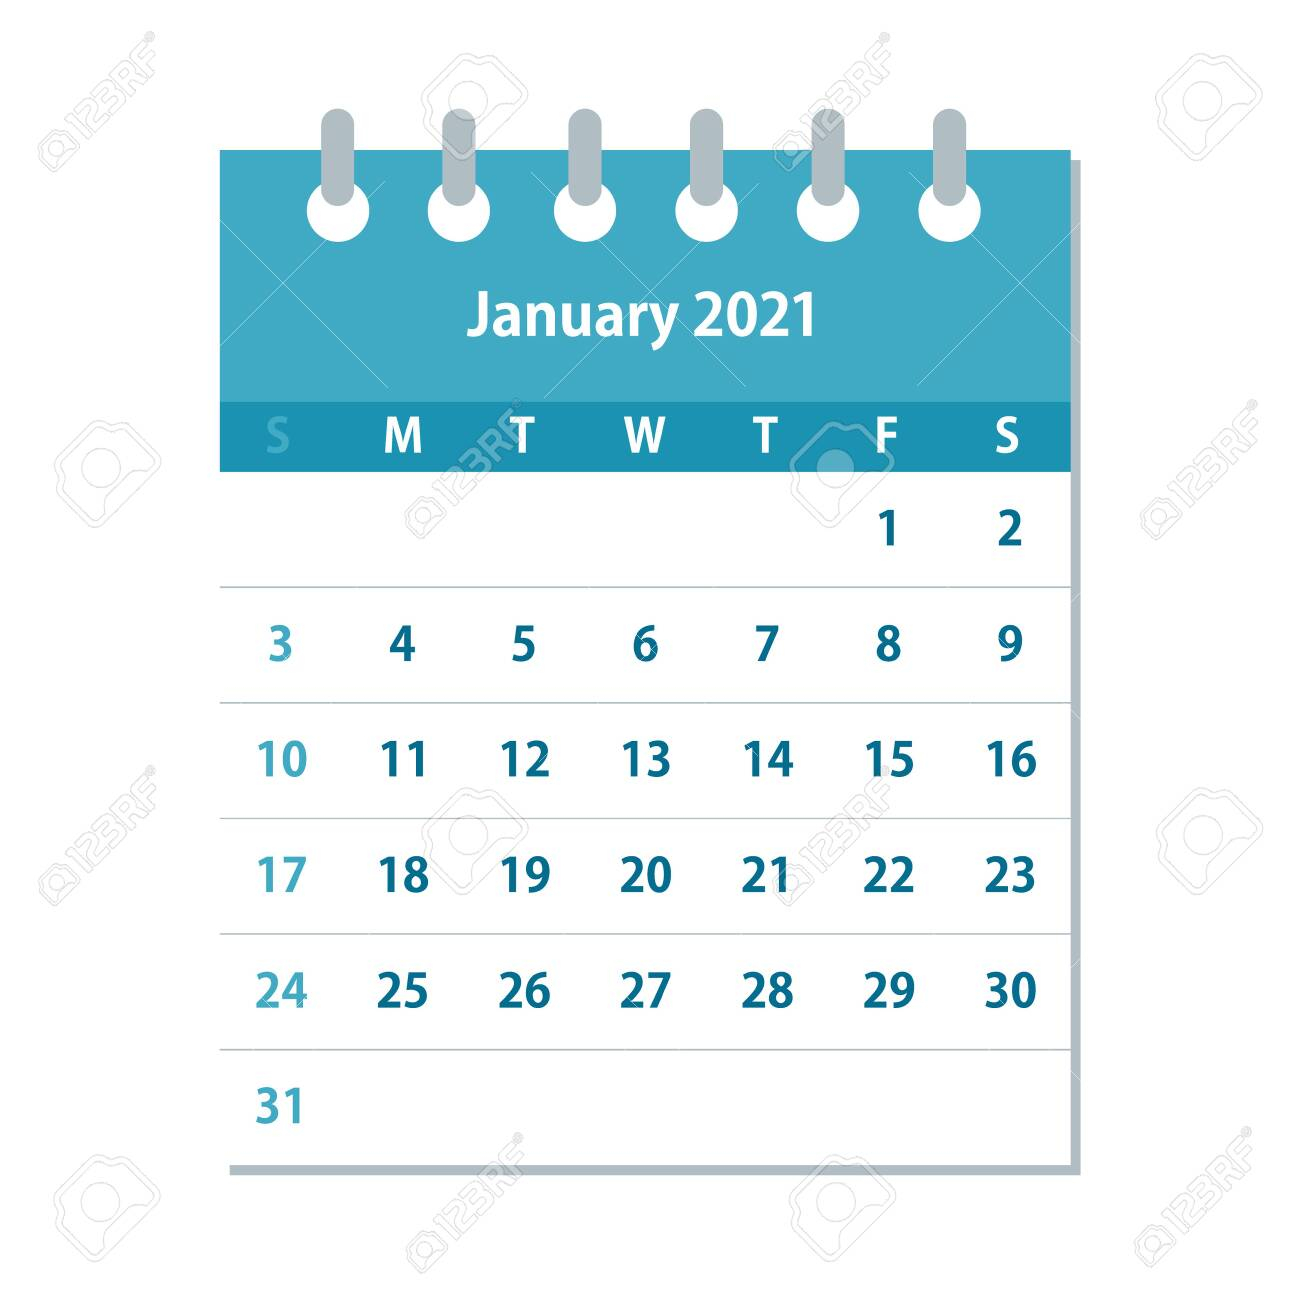 photo stock vector january 2021 calendar leaf monthly calendar design template week starts on sunday business vector il